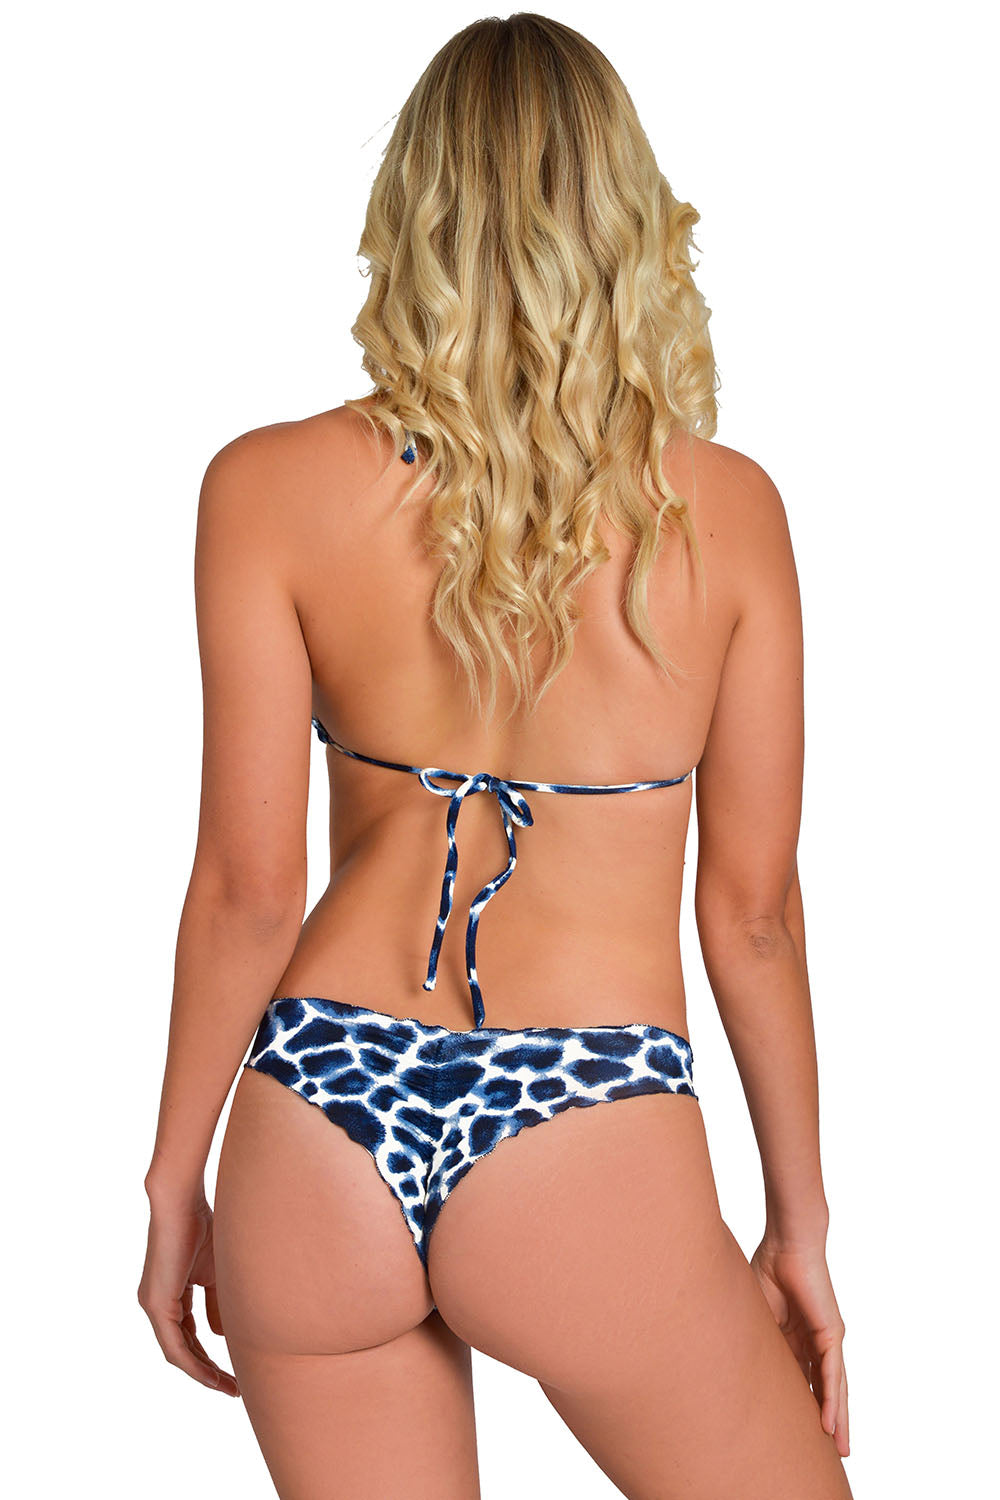 Blue Jaguar Less Coverage Signature Bikini